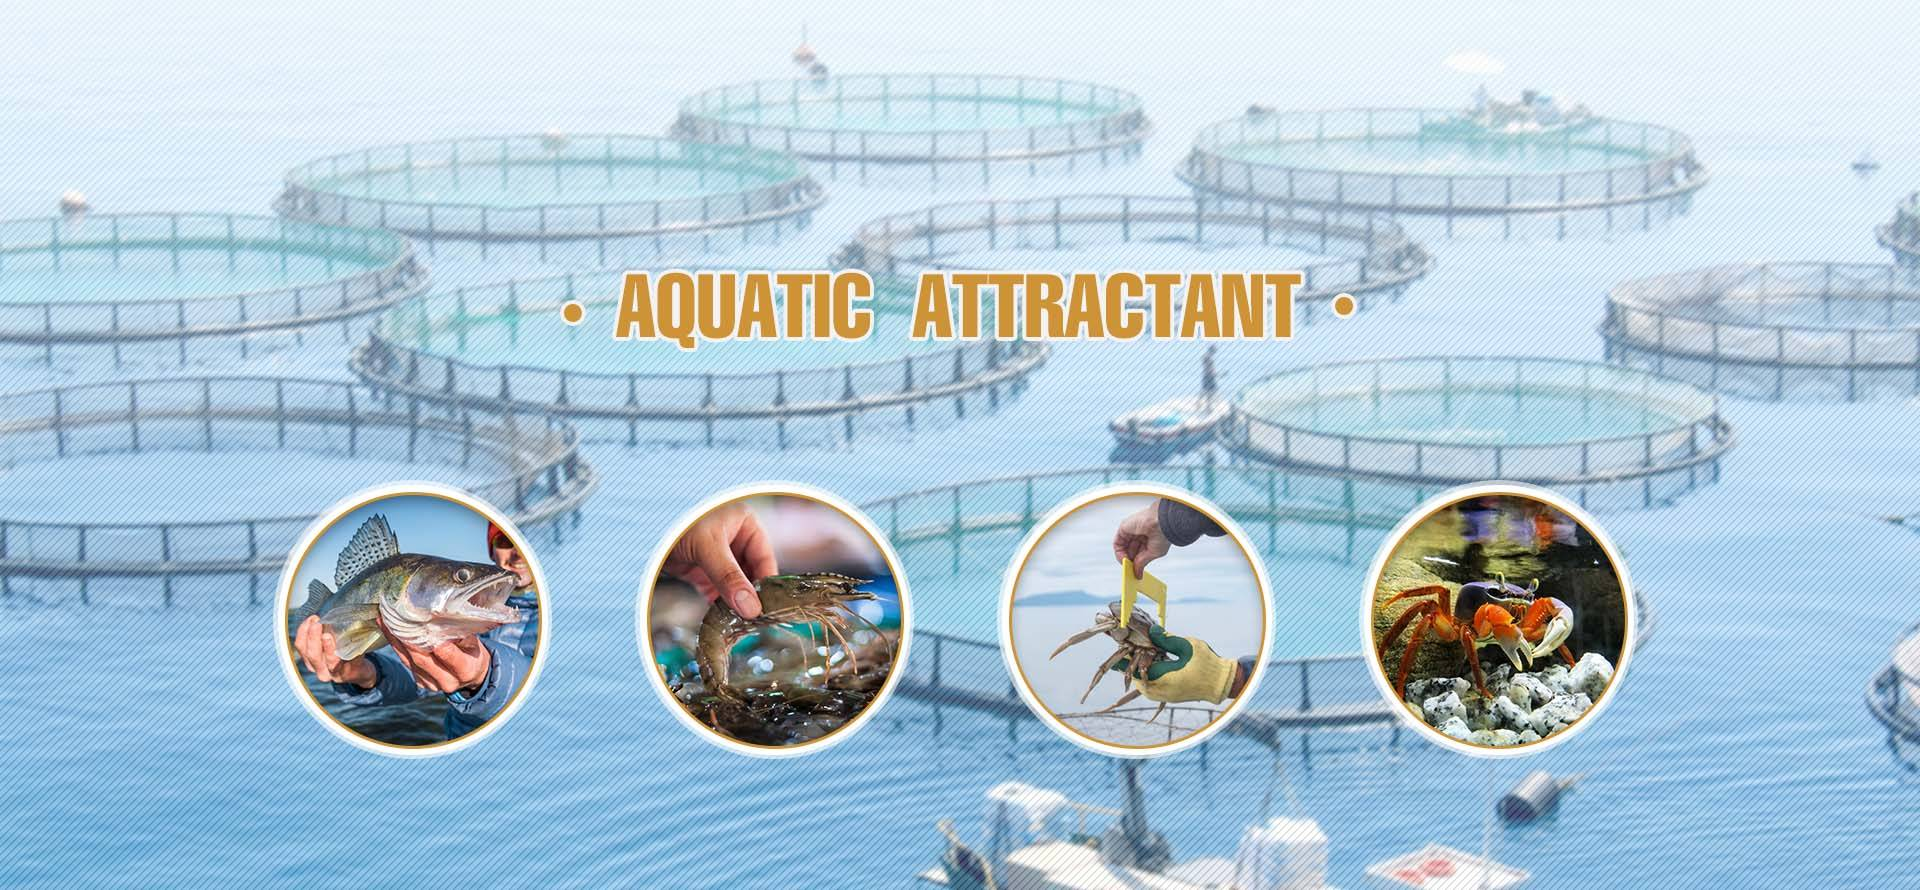 AQUATIQUE ATTRACTIF